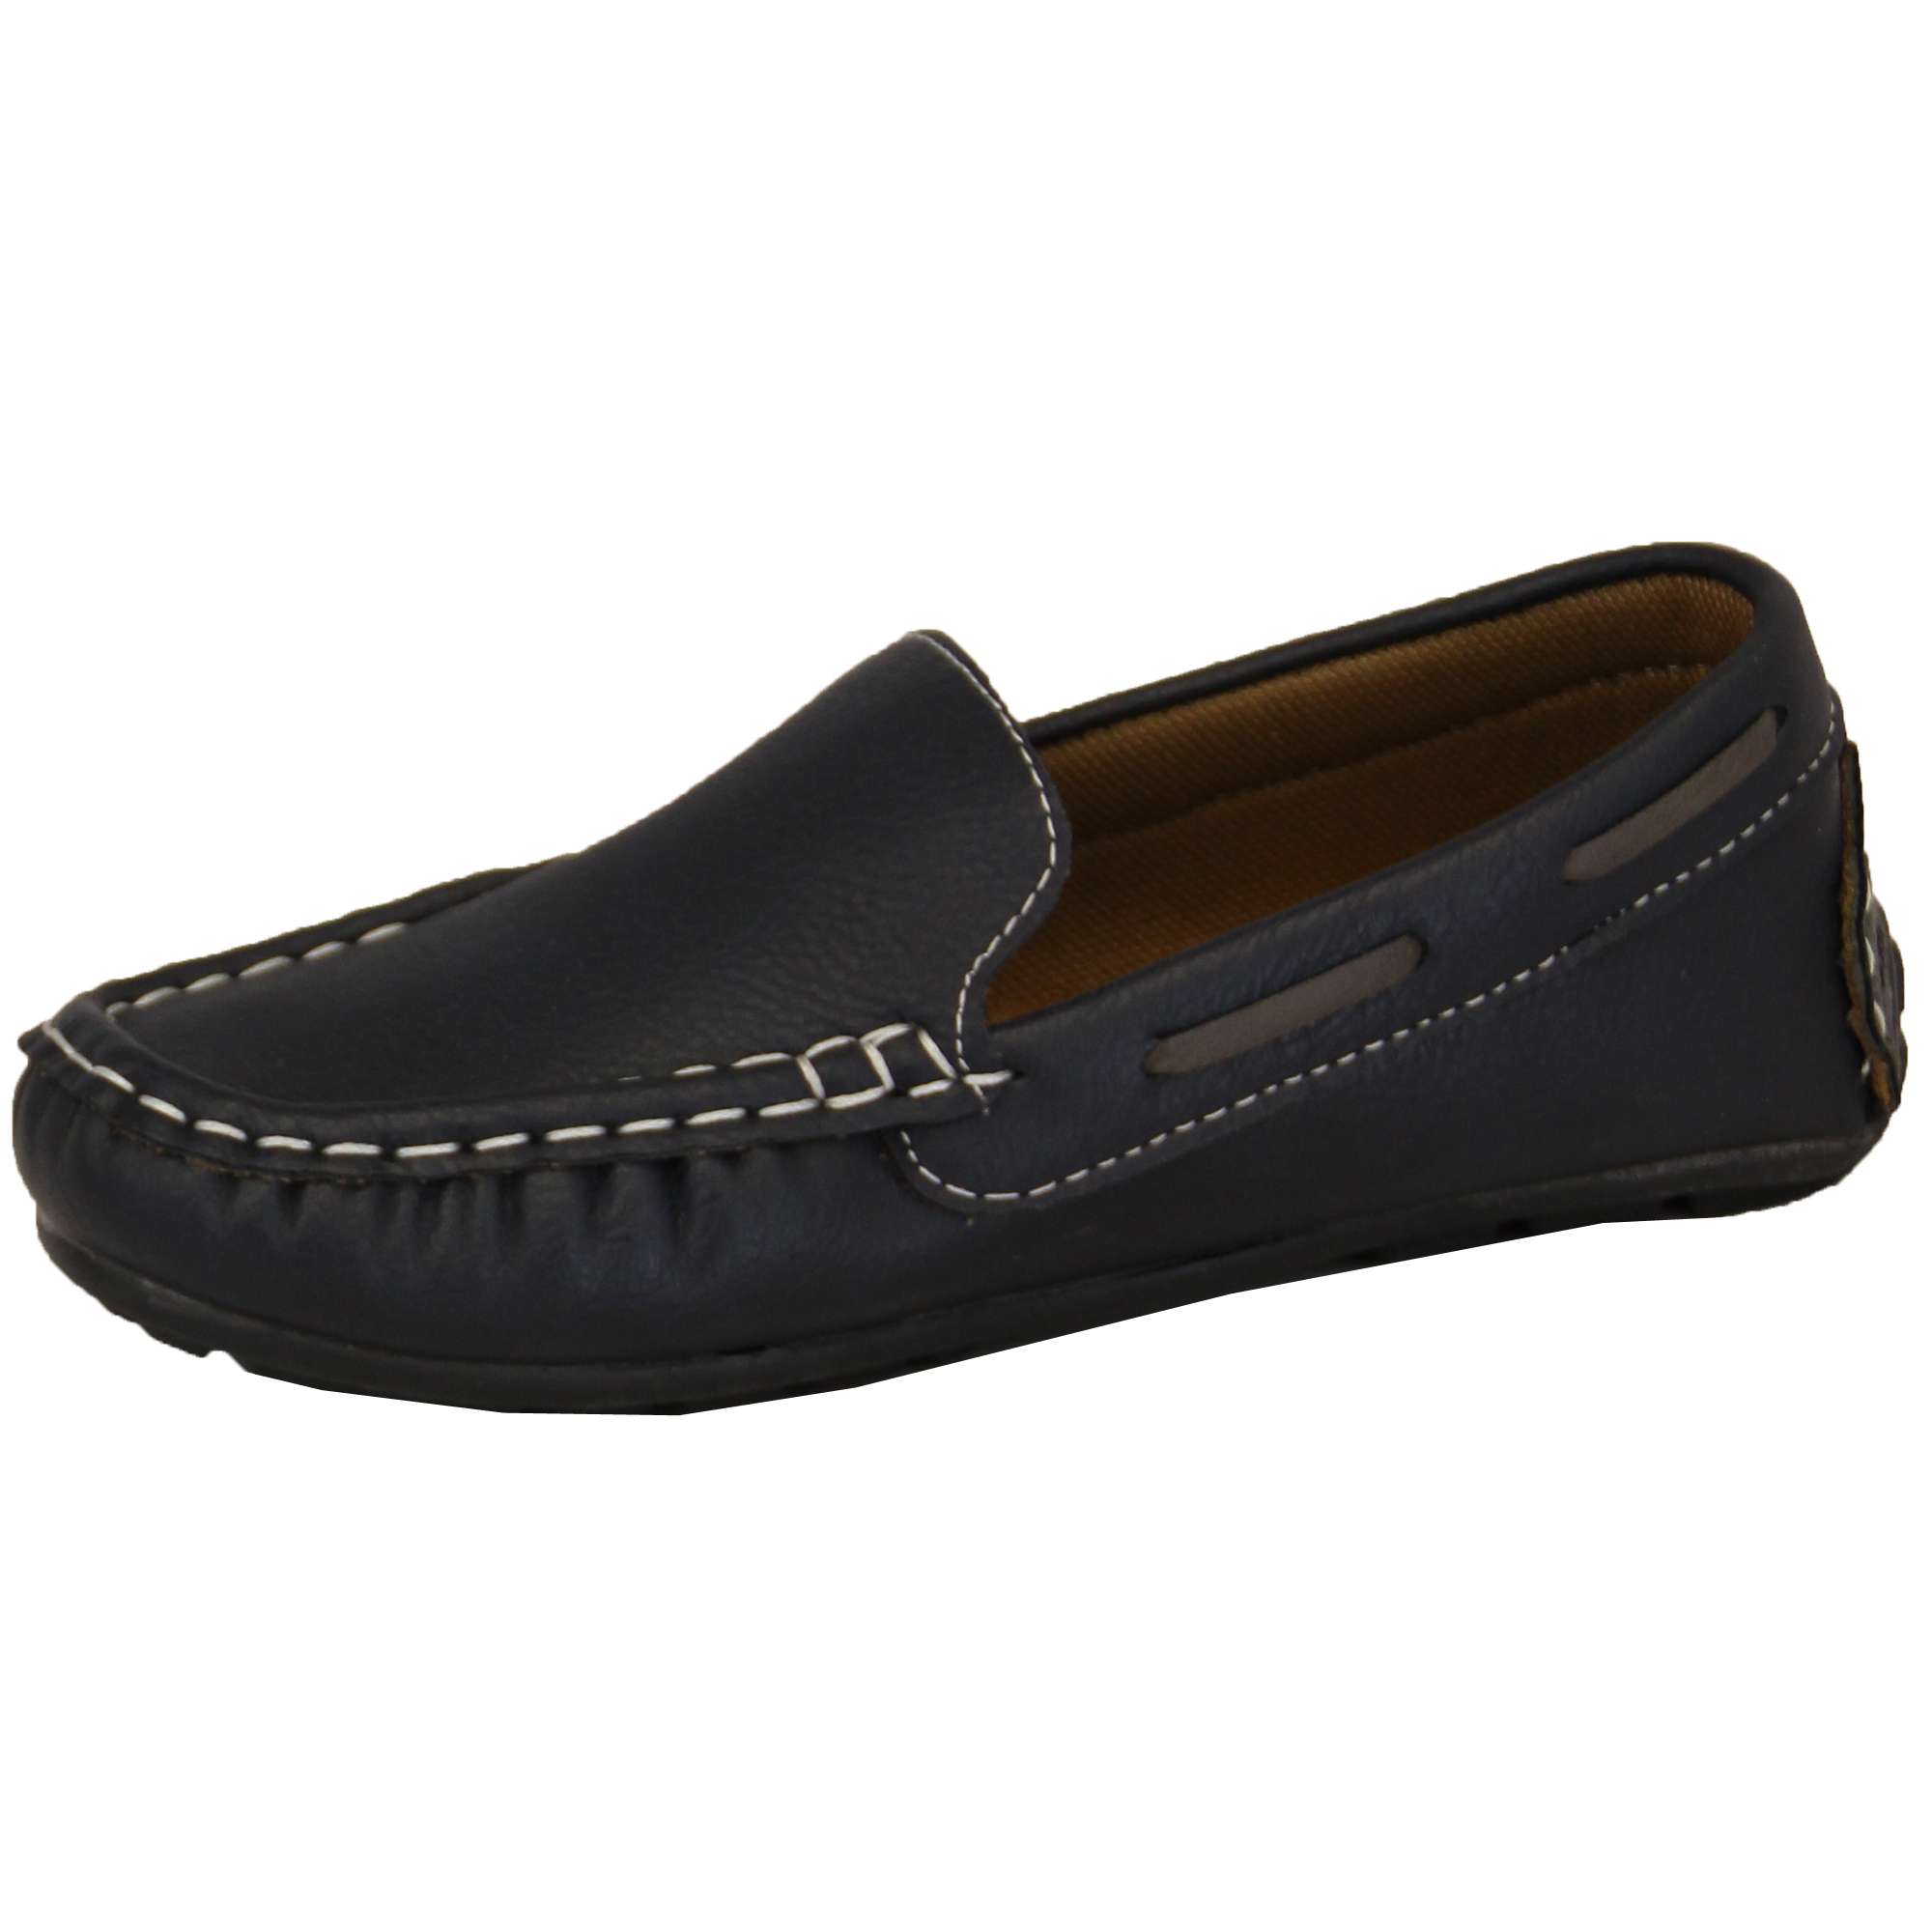 Kids Boys Girls Soft Loafers Oxford Flats Casual Shoes Toddler Slip On Moccasins.